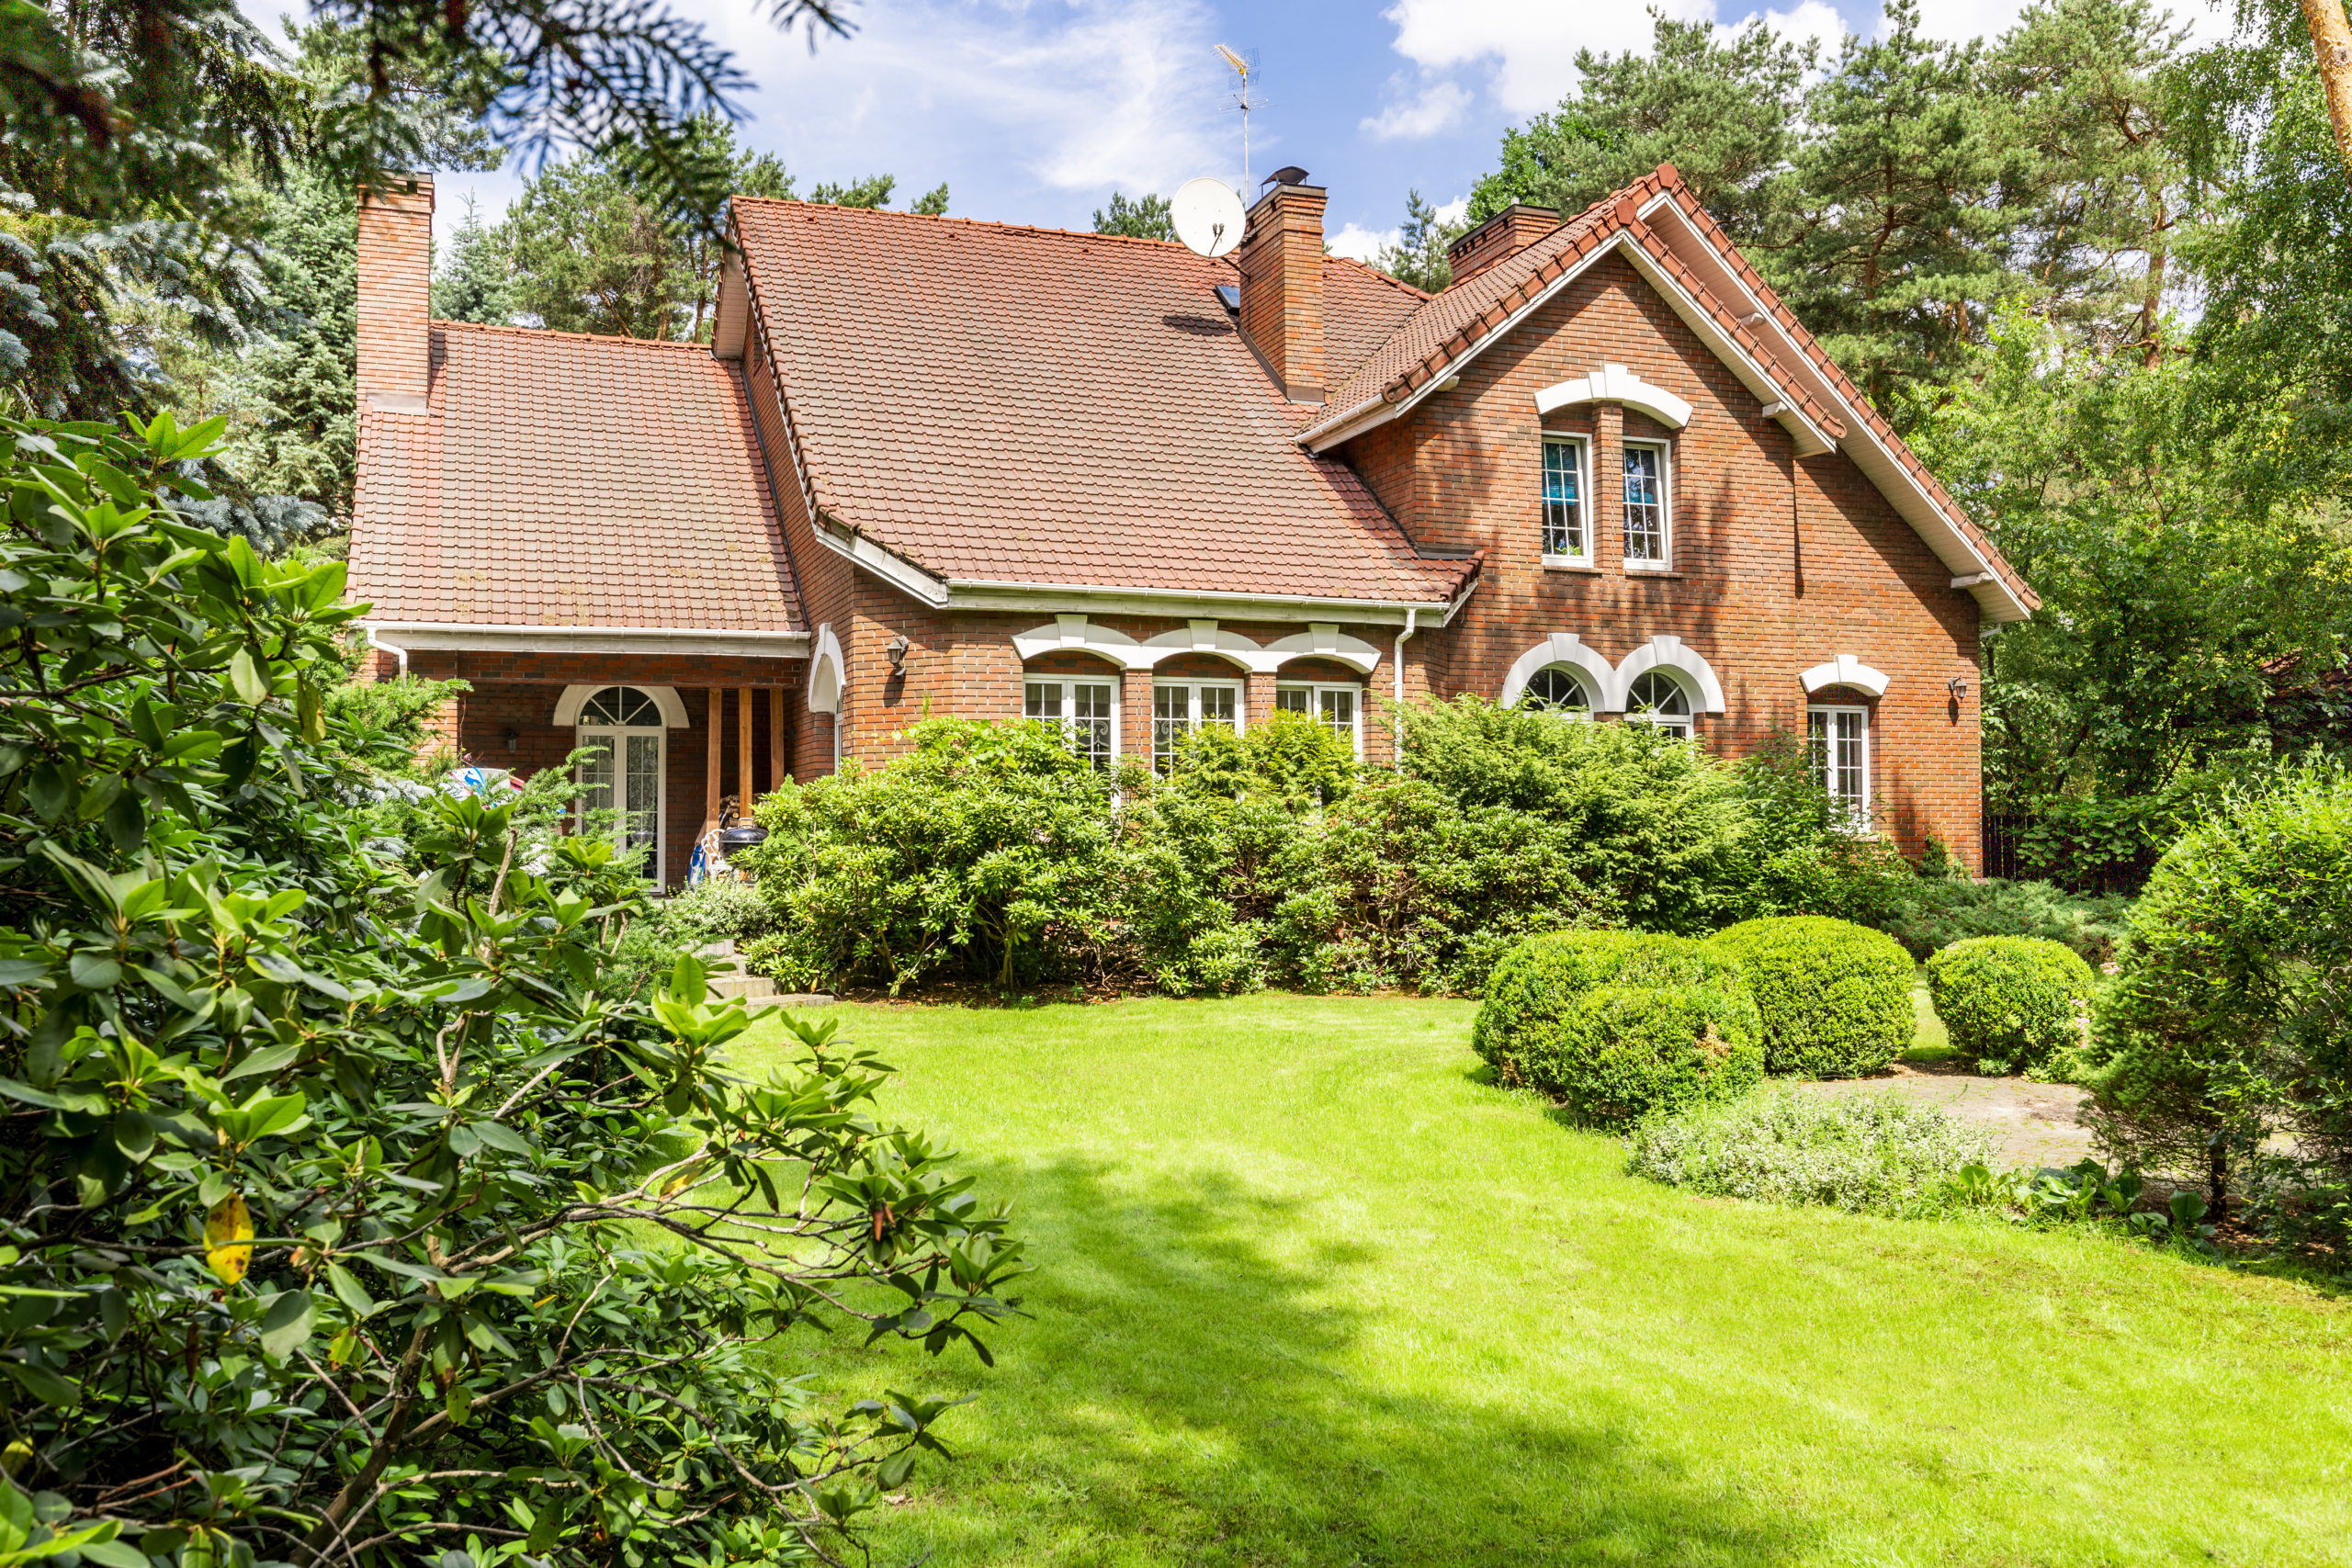 Backyard of a beautiful english style house with bushes and gree